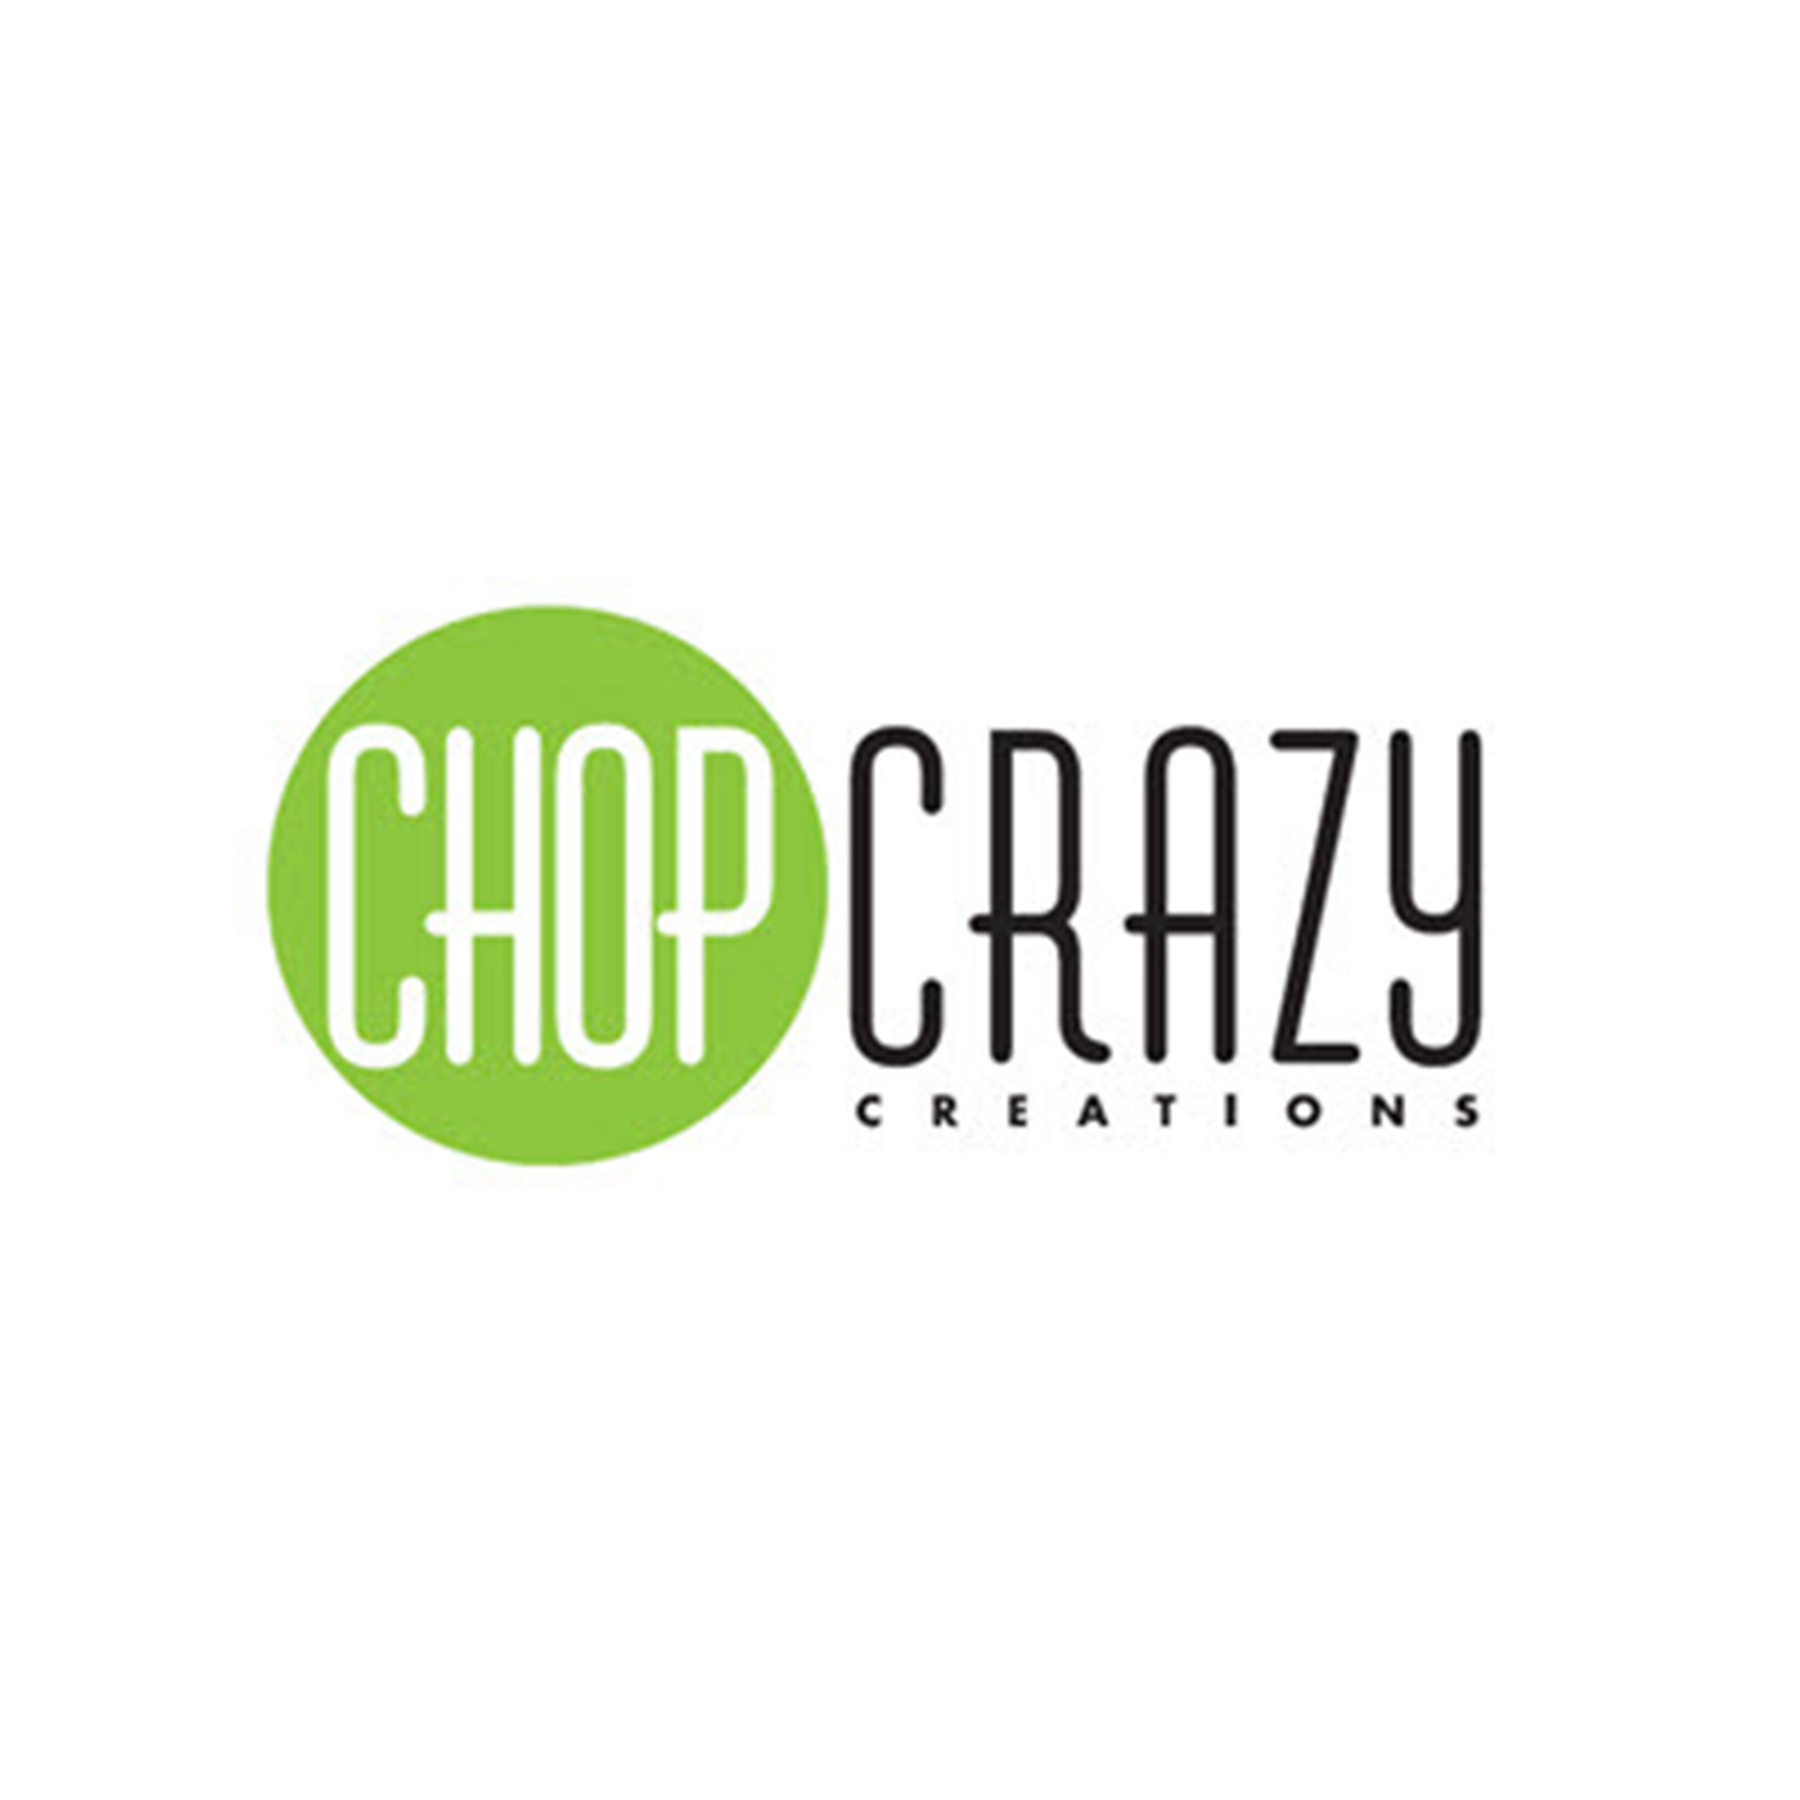 Chop: a selection of sites